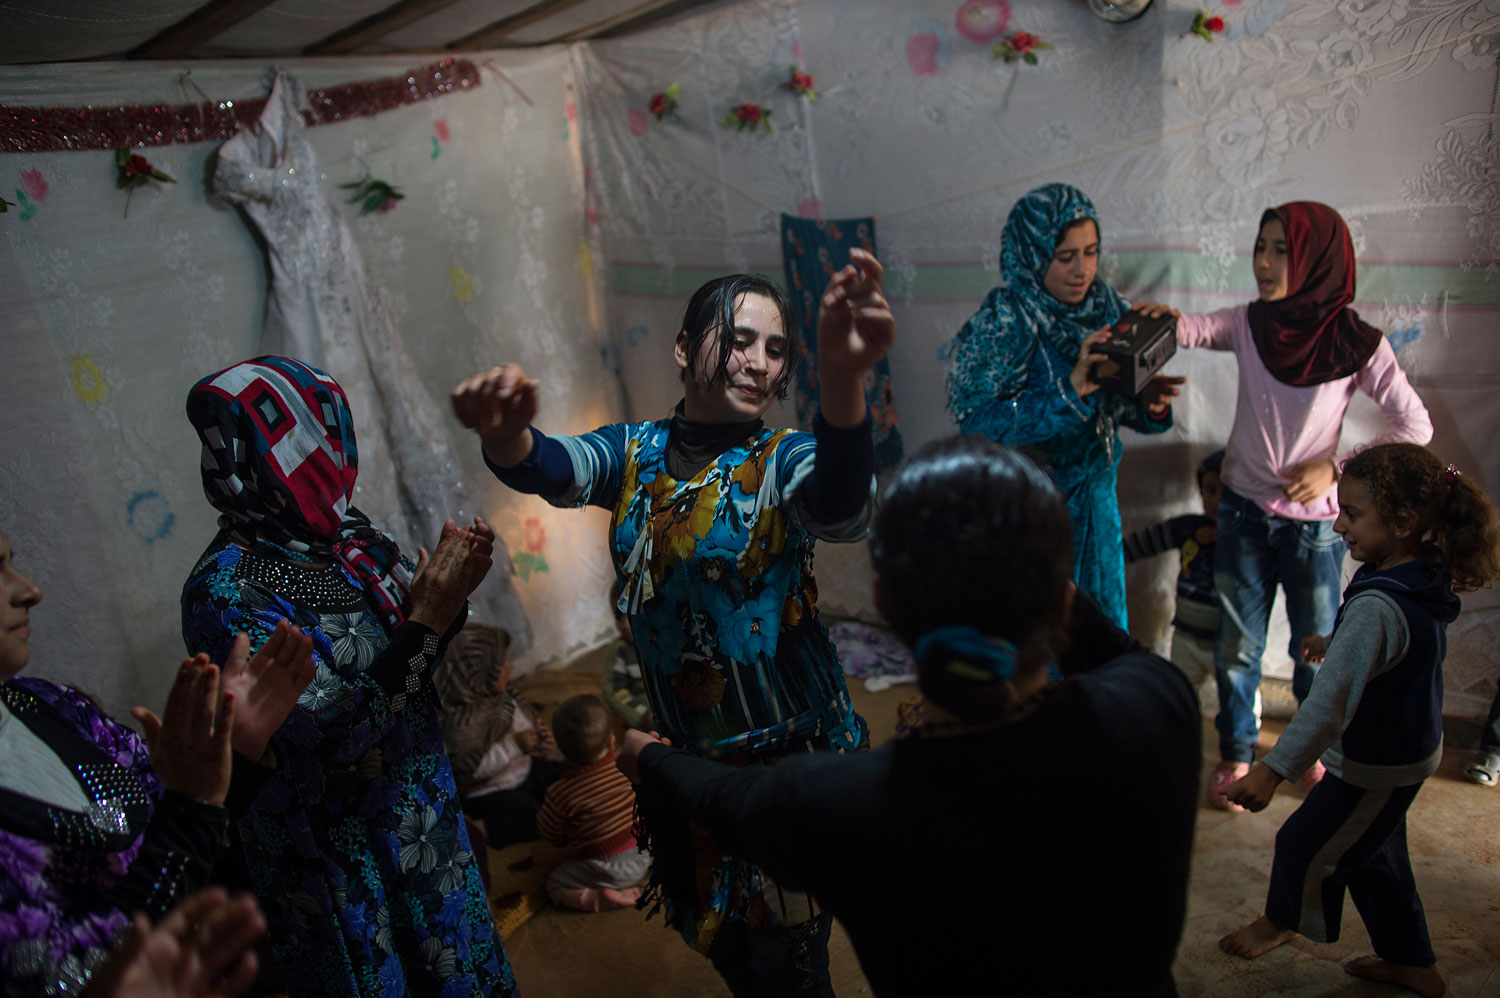 Female Syrian refugees dance around at a wedding celebration in a refugee camp in Marj El-Khokh, in Marjaayoun. The bride, Yousra, 16, (not shown) was marrying Ahmed, 21, from East Ghouta, Syria. The father of the groom spoke about the wedding  we want to create life out of death and from sadness we want to create happiness.